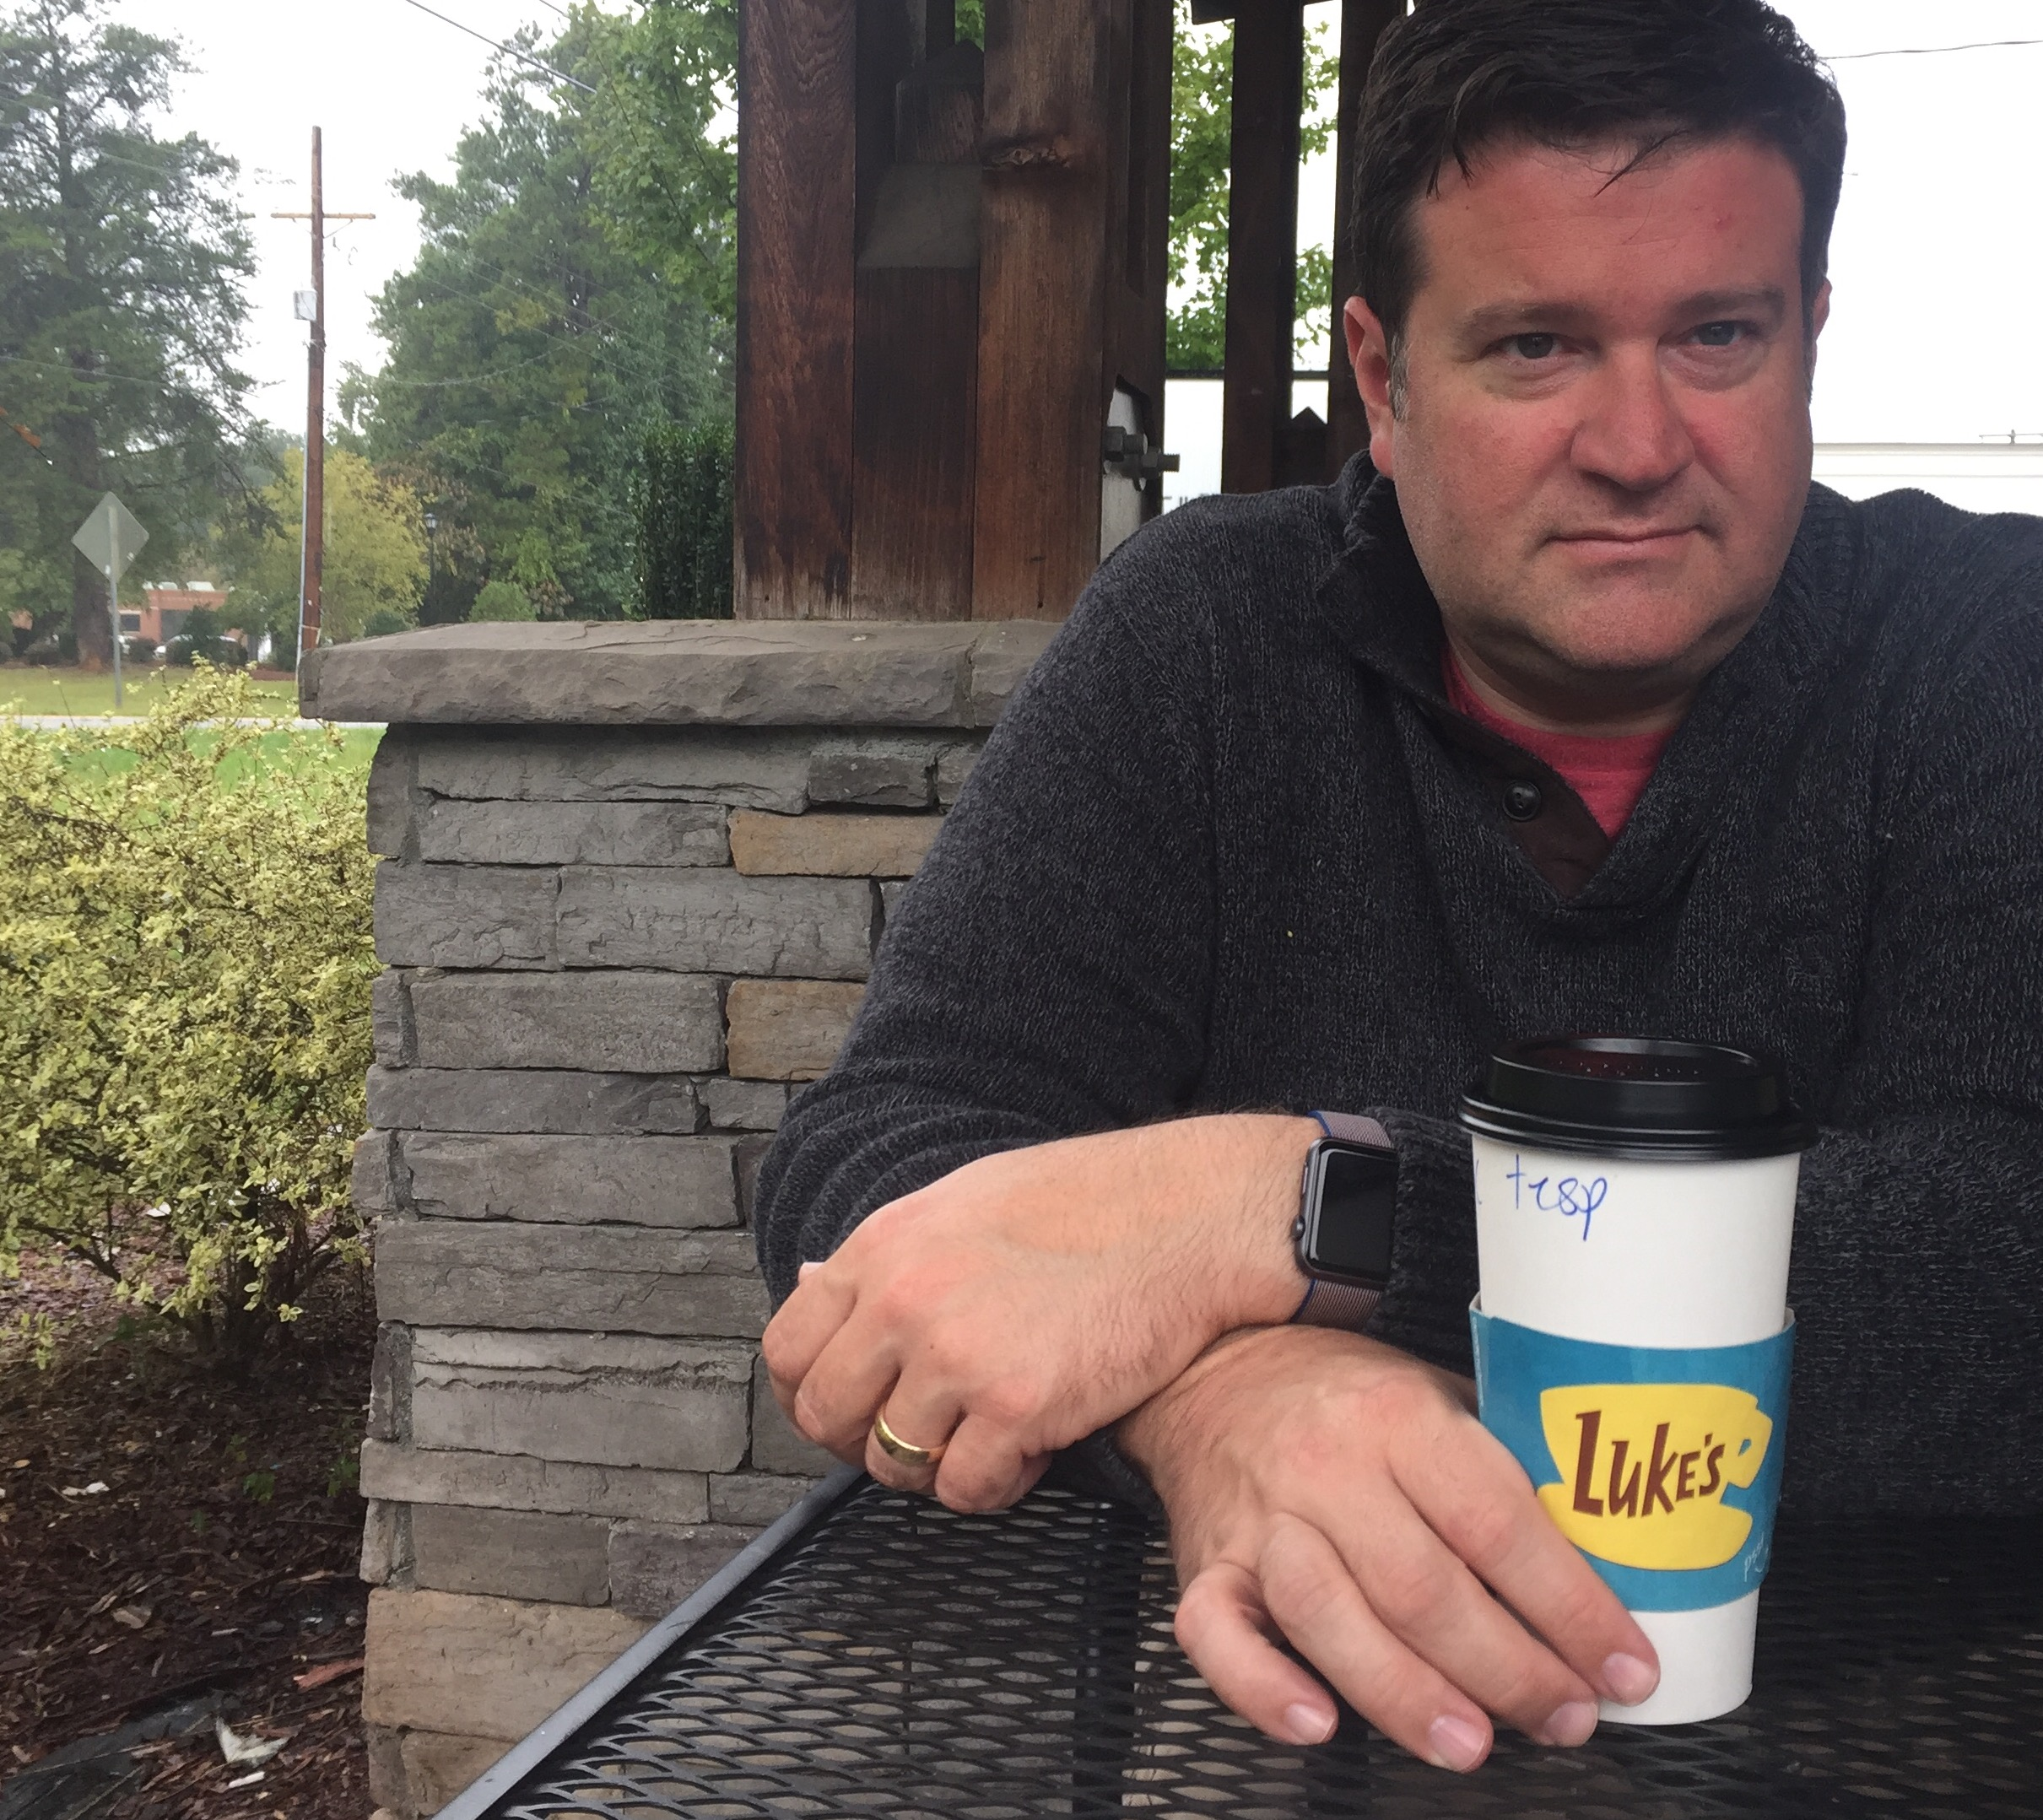 My serious coffee face, with A Luke's cup.